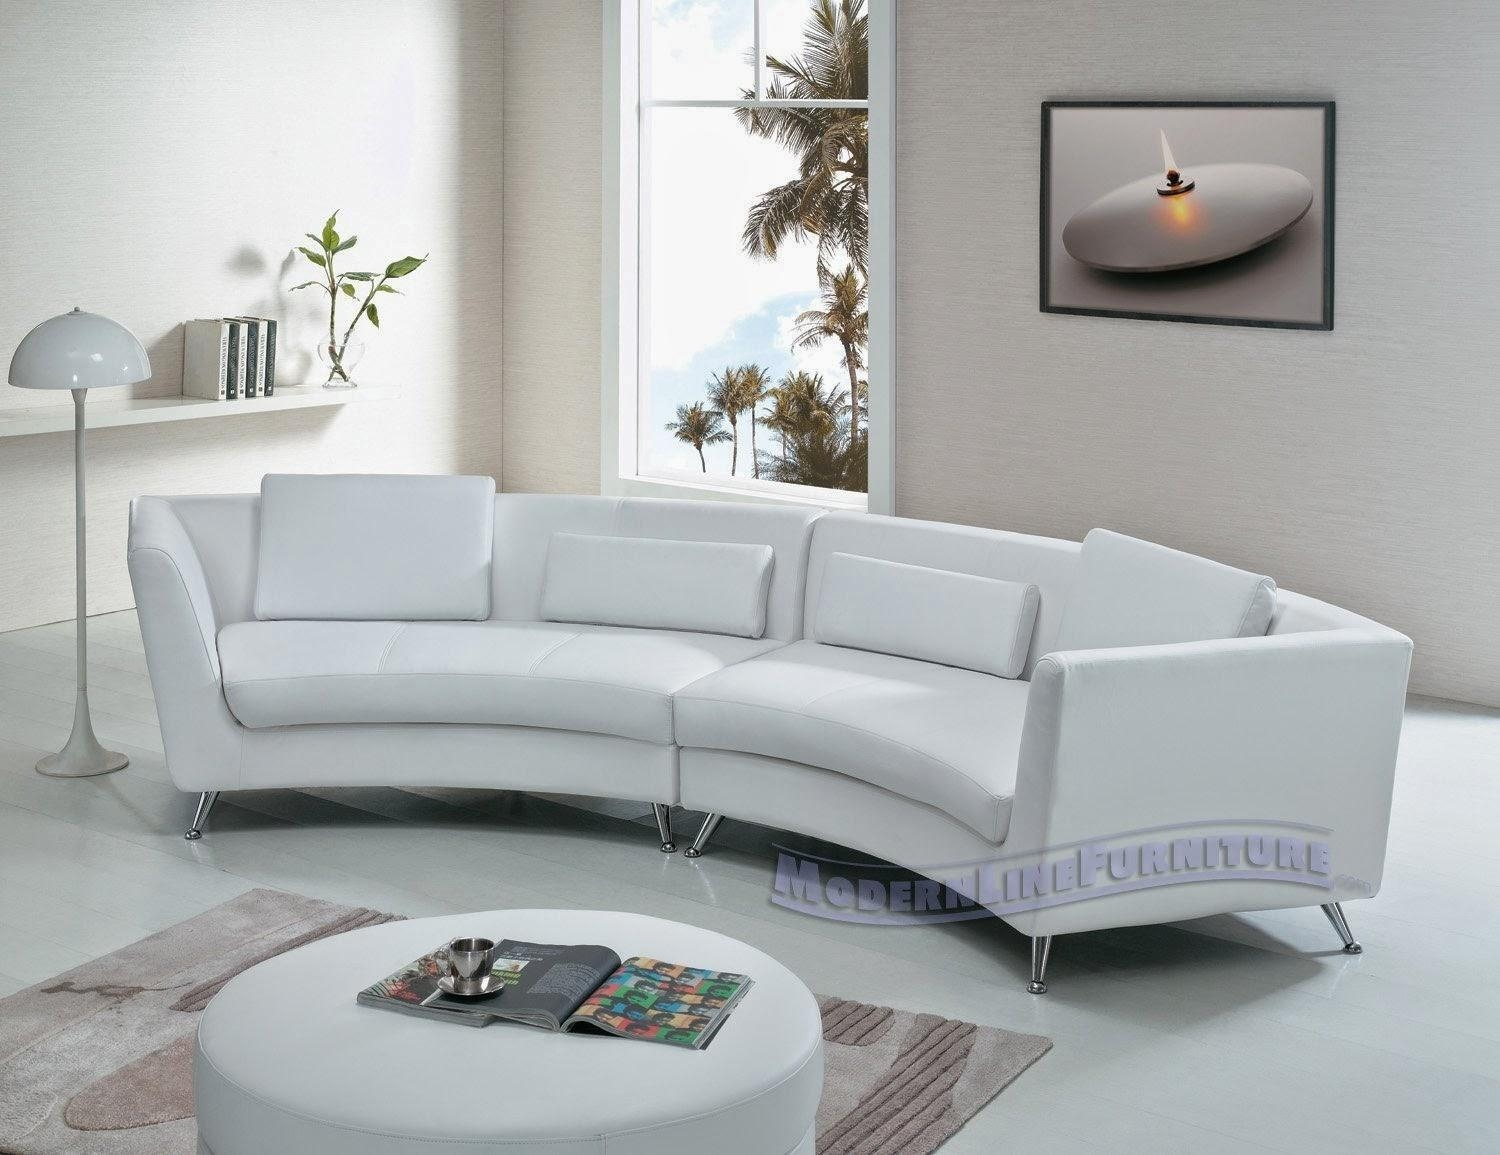 Small Curved White Leather Couch | Tehranmix Decoration With Regard To Leather Curved Sectional (Image 16 of 20)